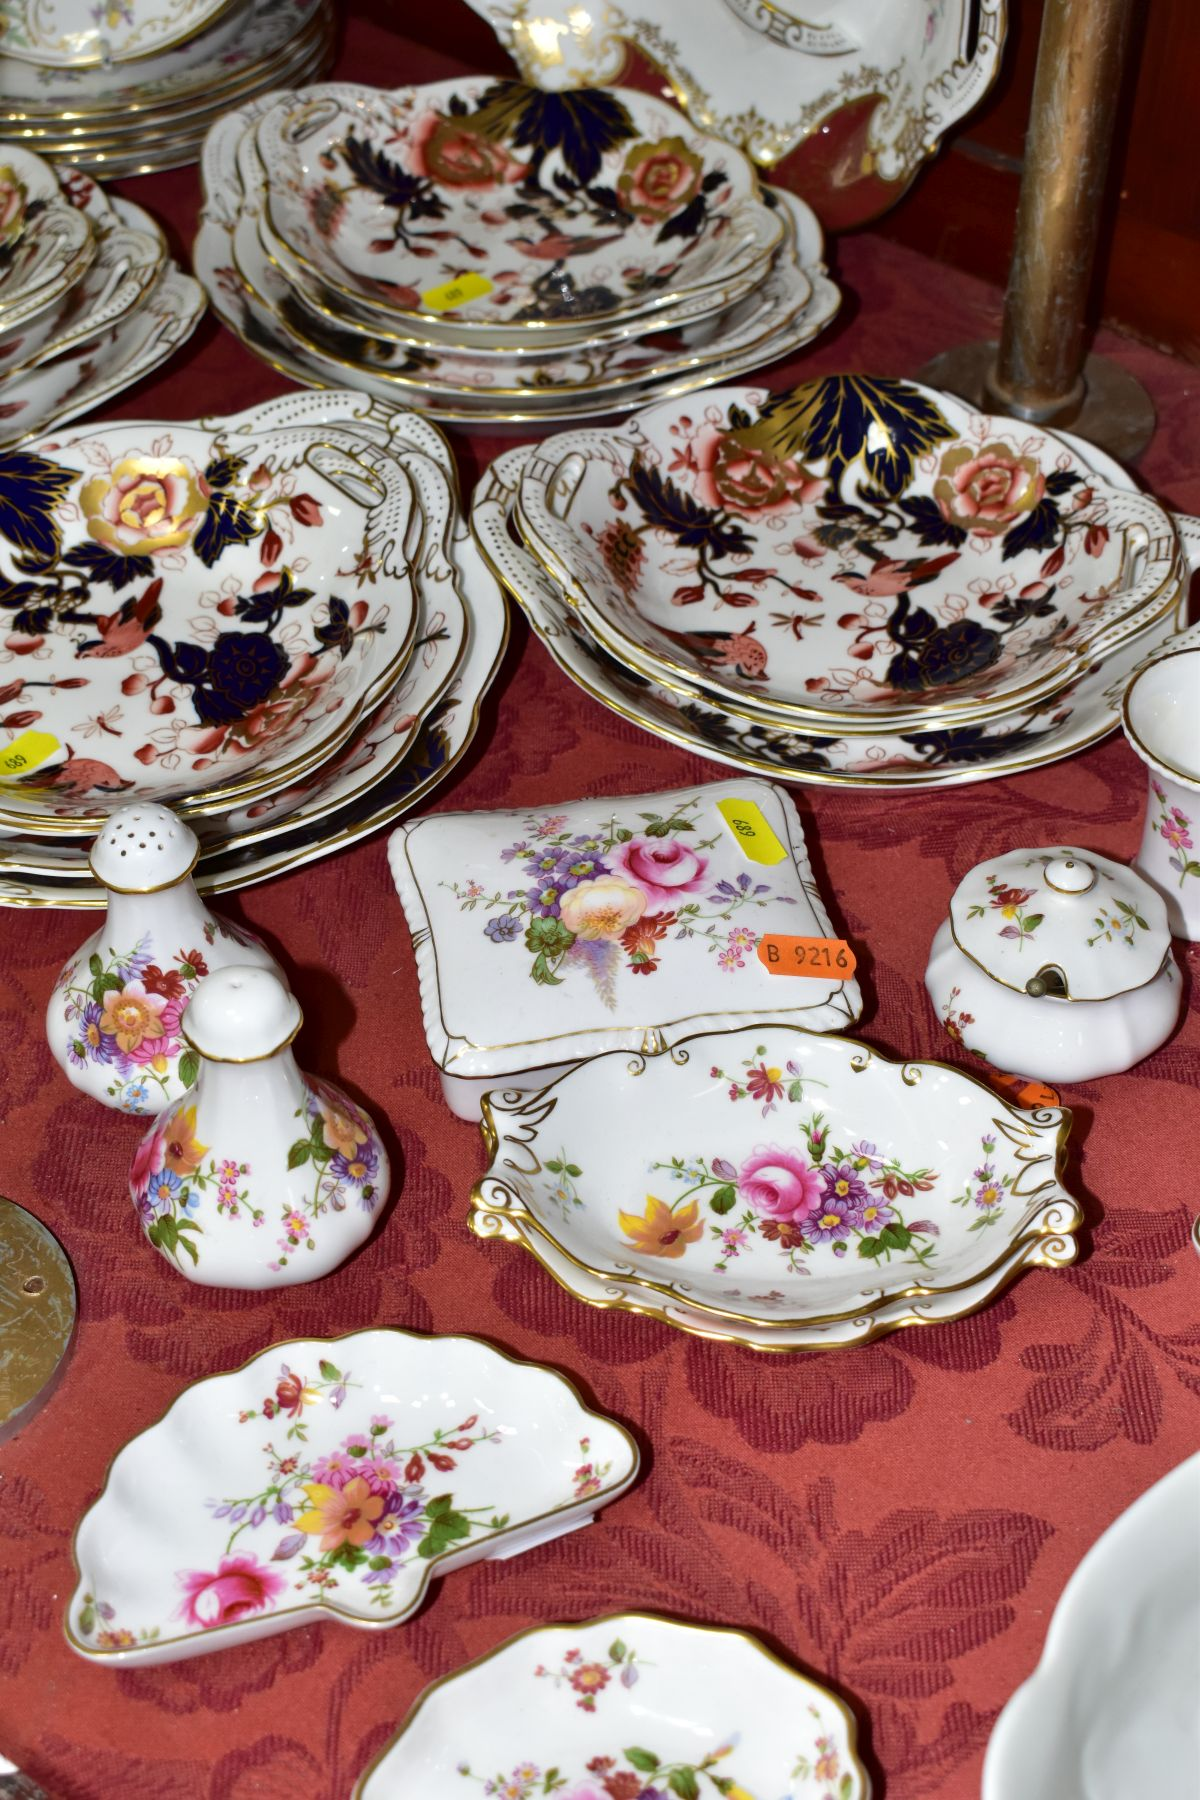 DECORATIVE CERAMICS, ETC, to include Royal Crown Derby 'Derby Posies' pintrays trinket box, - Image 3 of 13